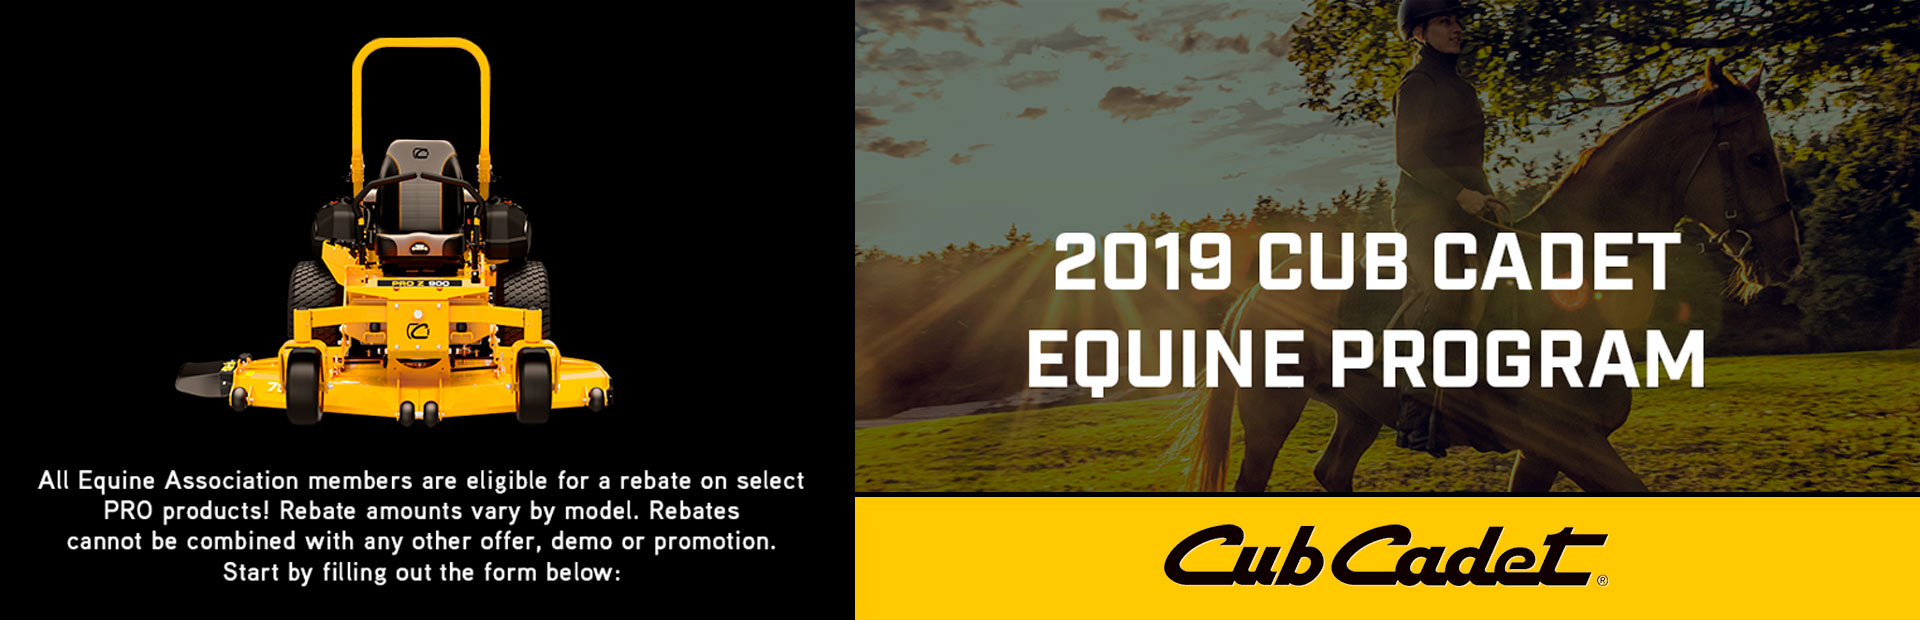 Cub Cadet: EQUINE CLUBS ELIGIBLE FOR A REBATE UP TO $500